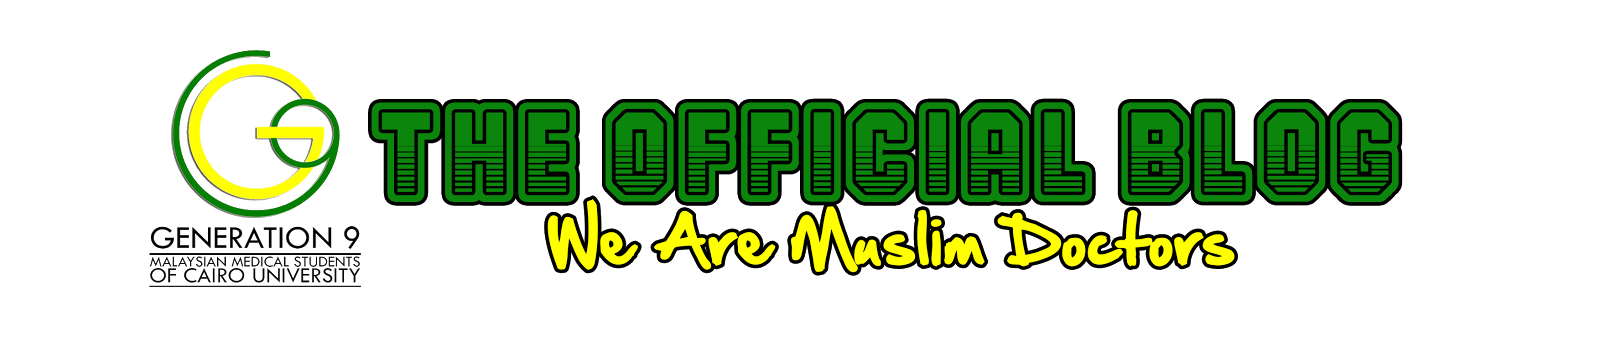 WE ARE MUSLIM DOCTORS GEN09